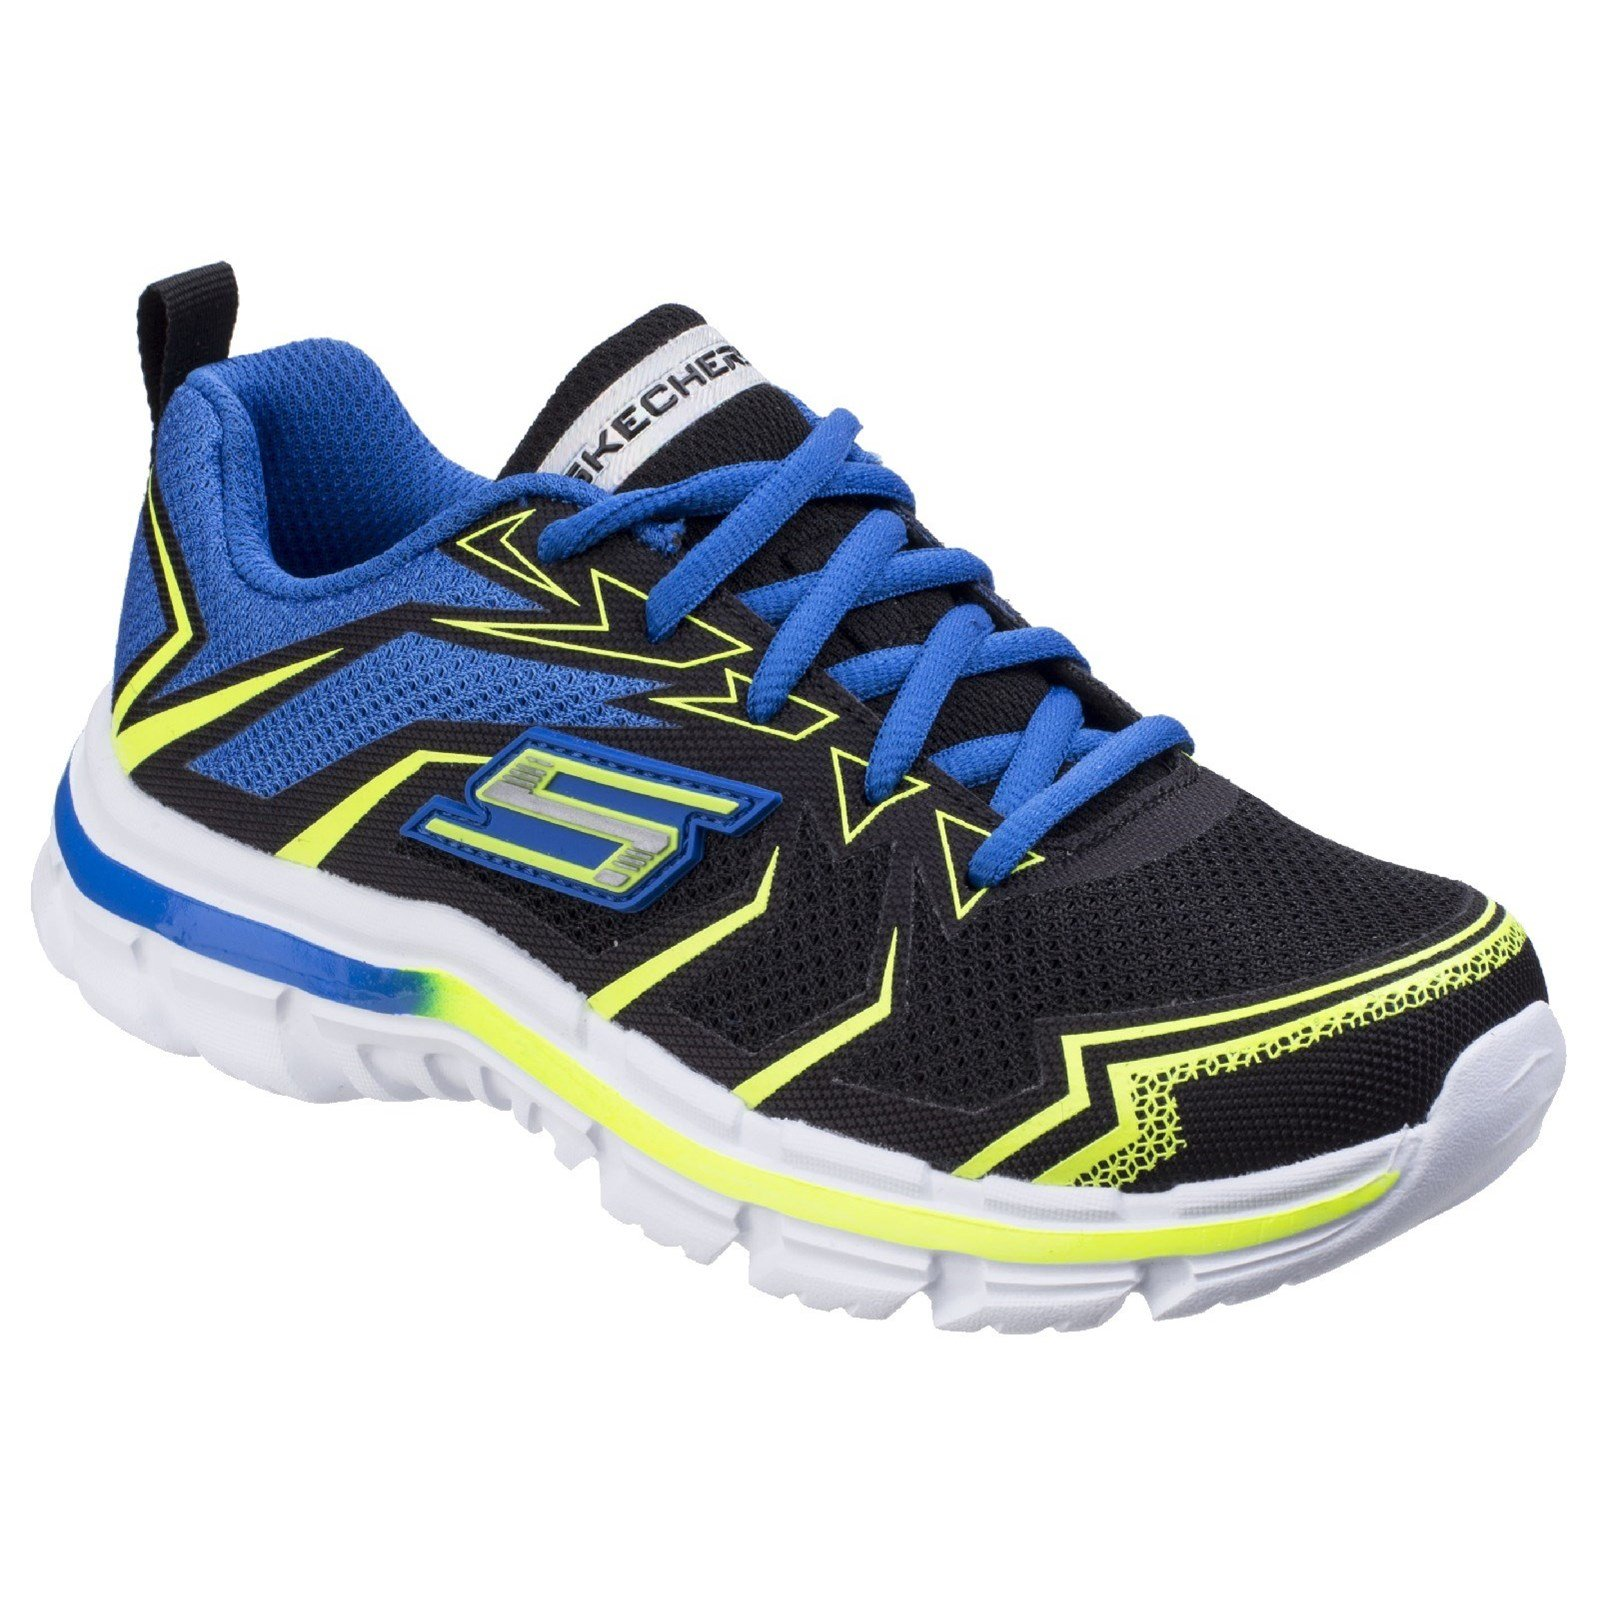 Skechers Childrens Boys SK95356L Nitrate Ultra Blast Sports Shoes/Trainers (Grey/Charcoal, Black/Blue)